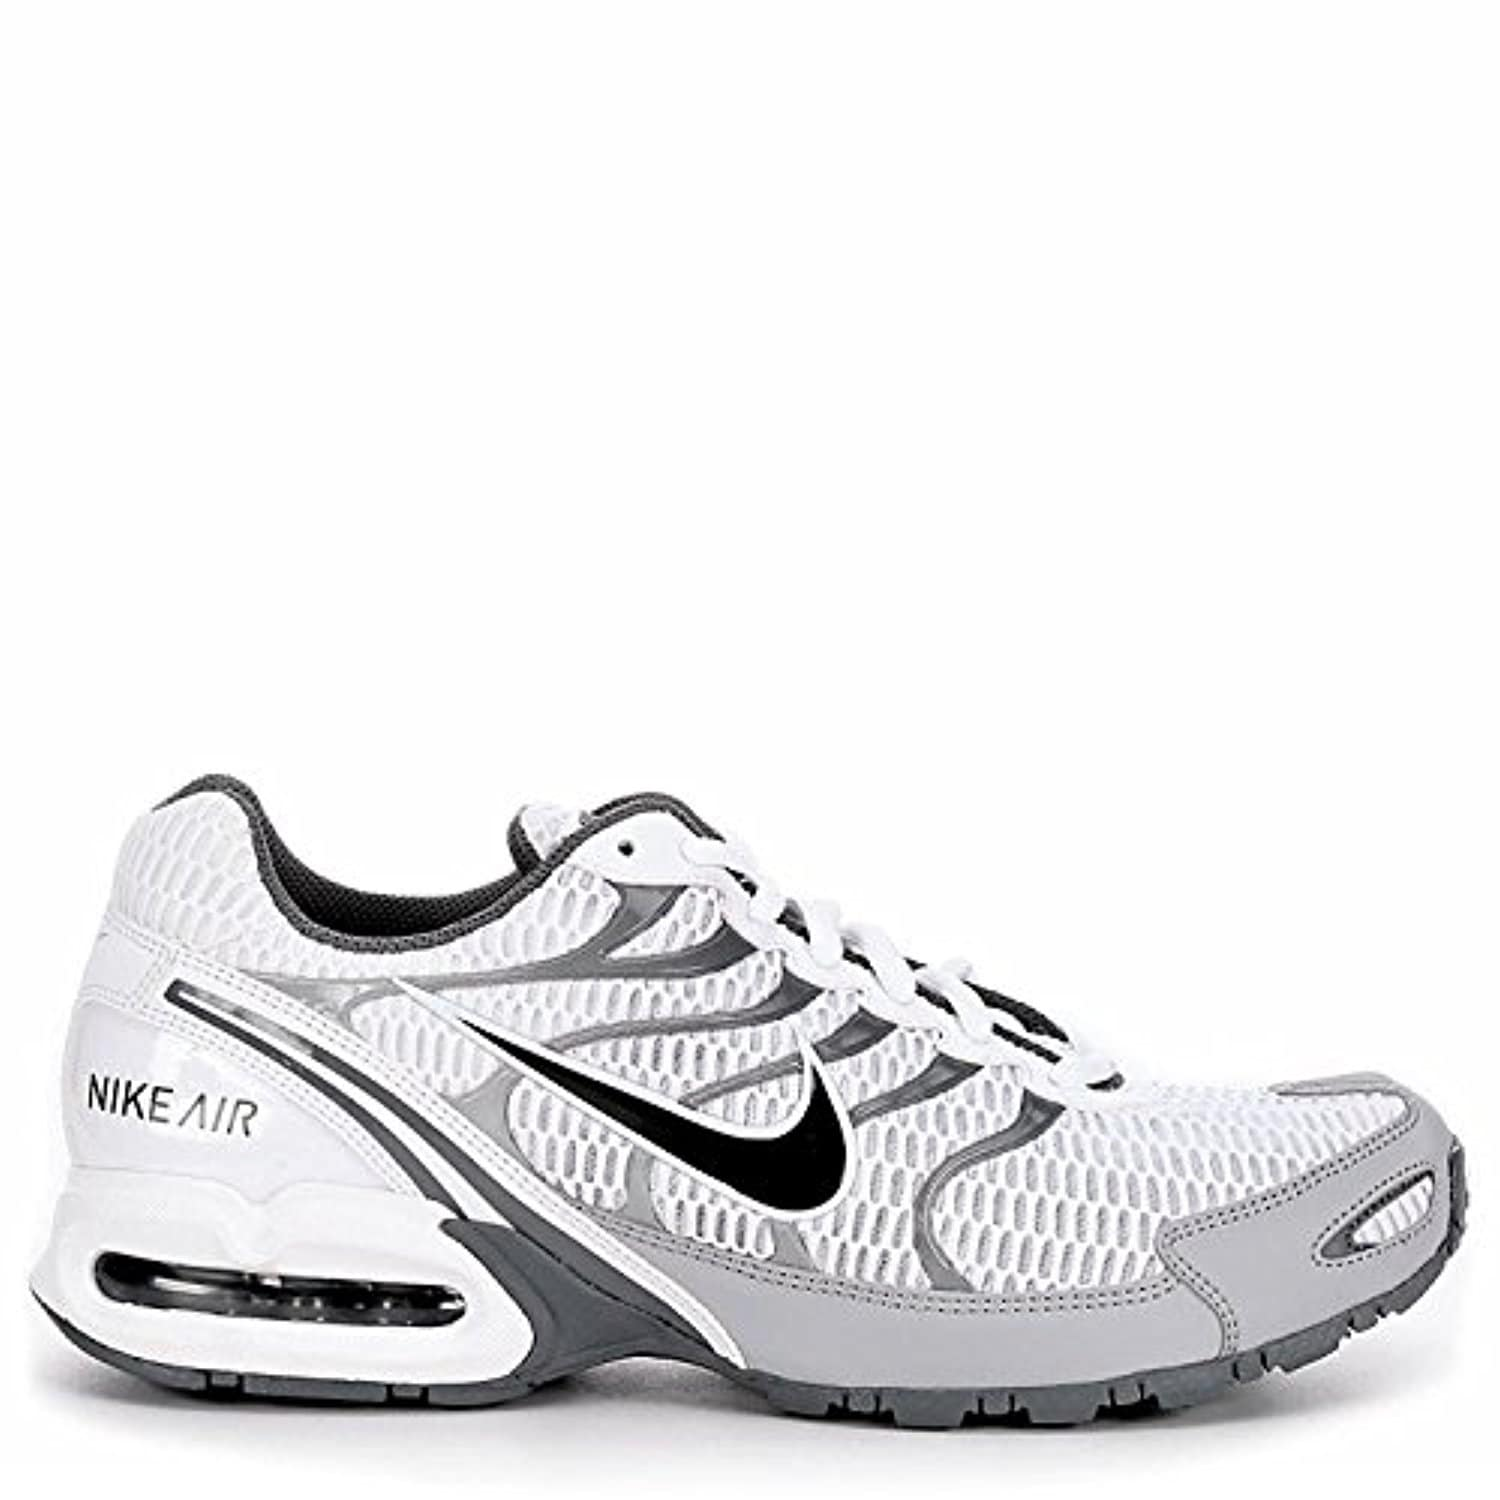 premium selection fa7fc e95c8 ... running shoe nike be49b 459c0  best price shop nike mens air max torch 4  white anthracite wolf grey cool grey 14